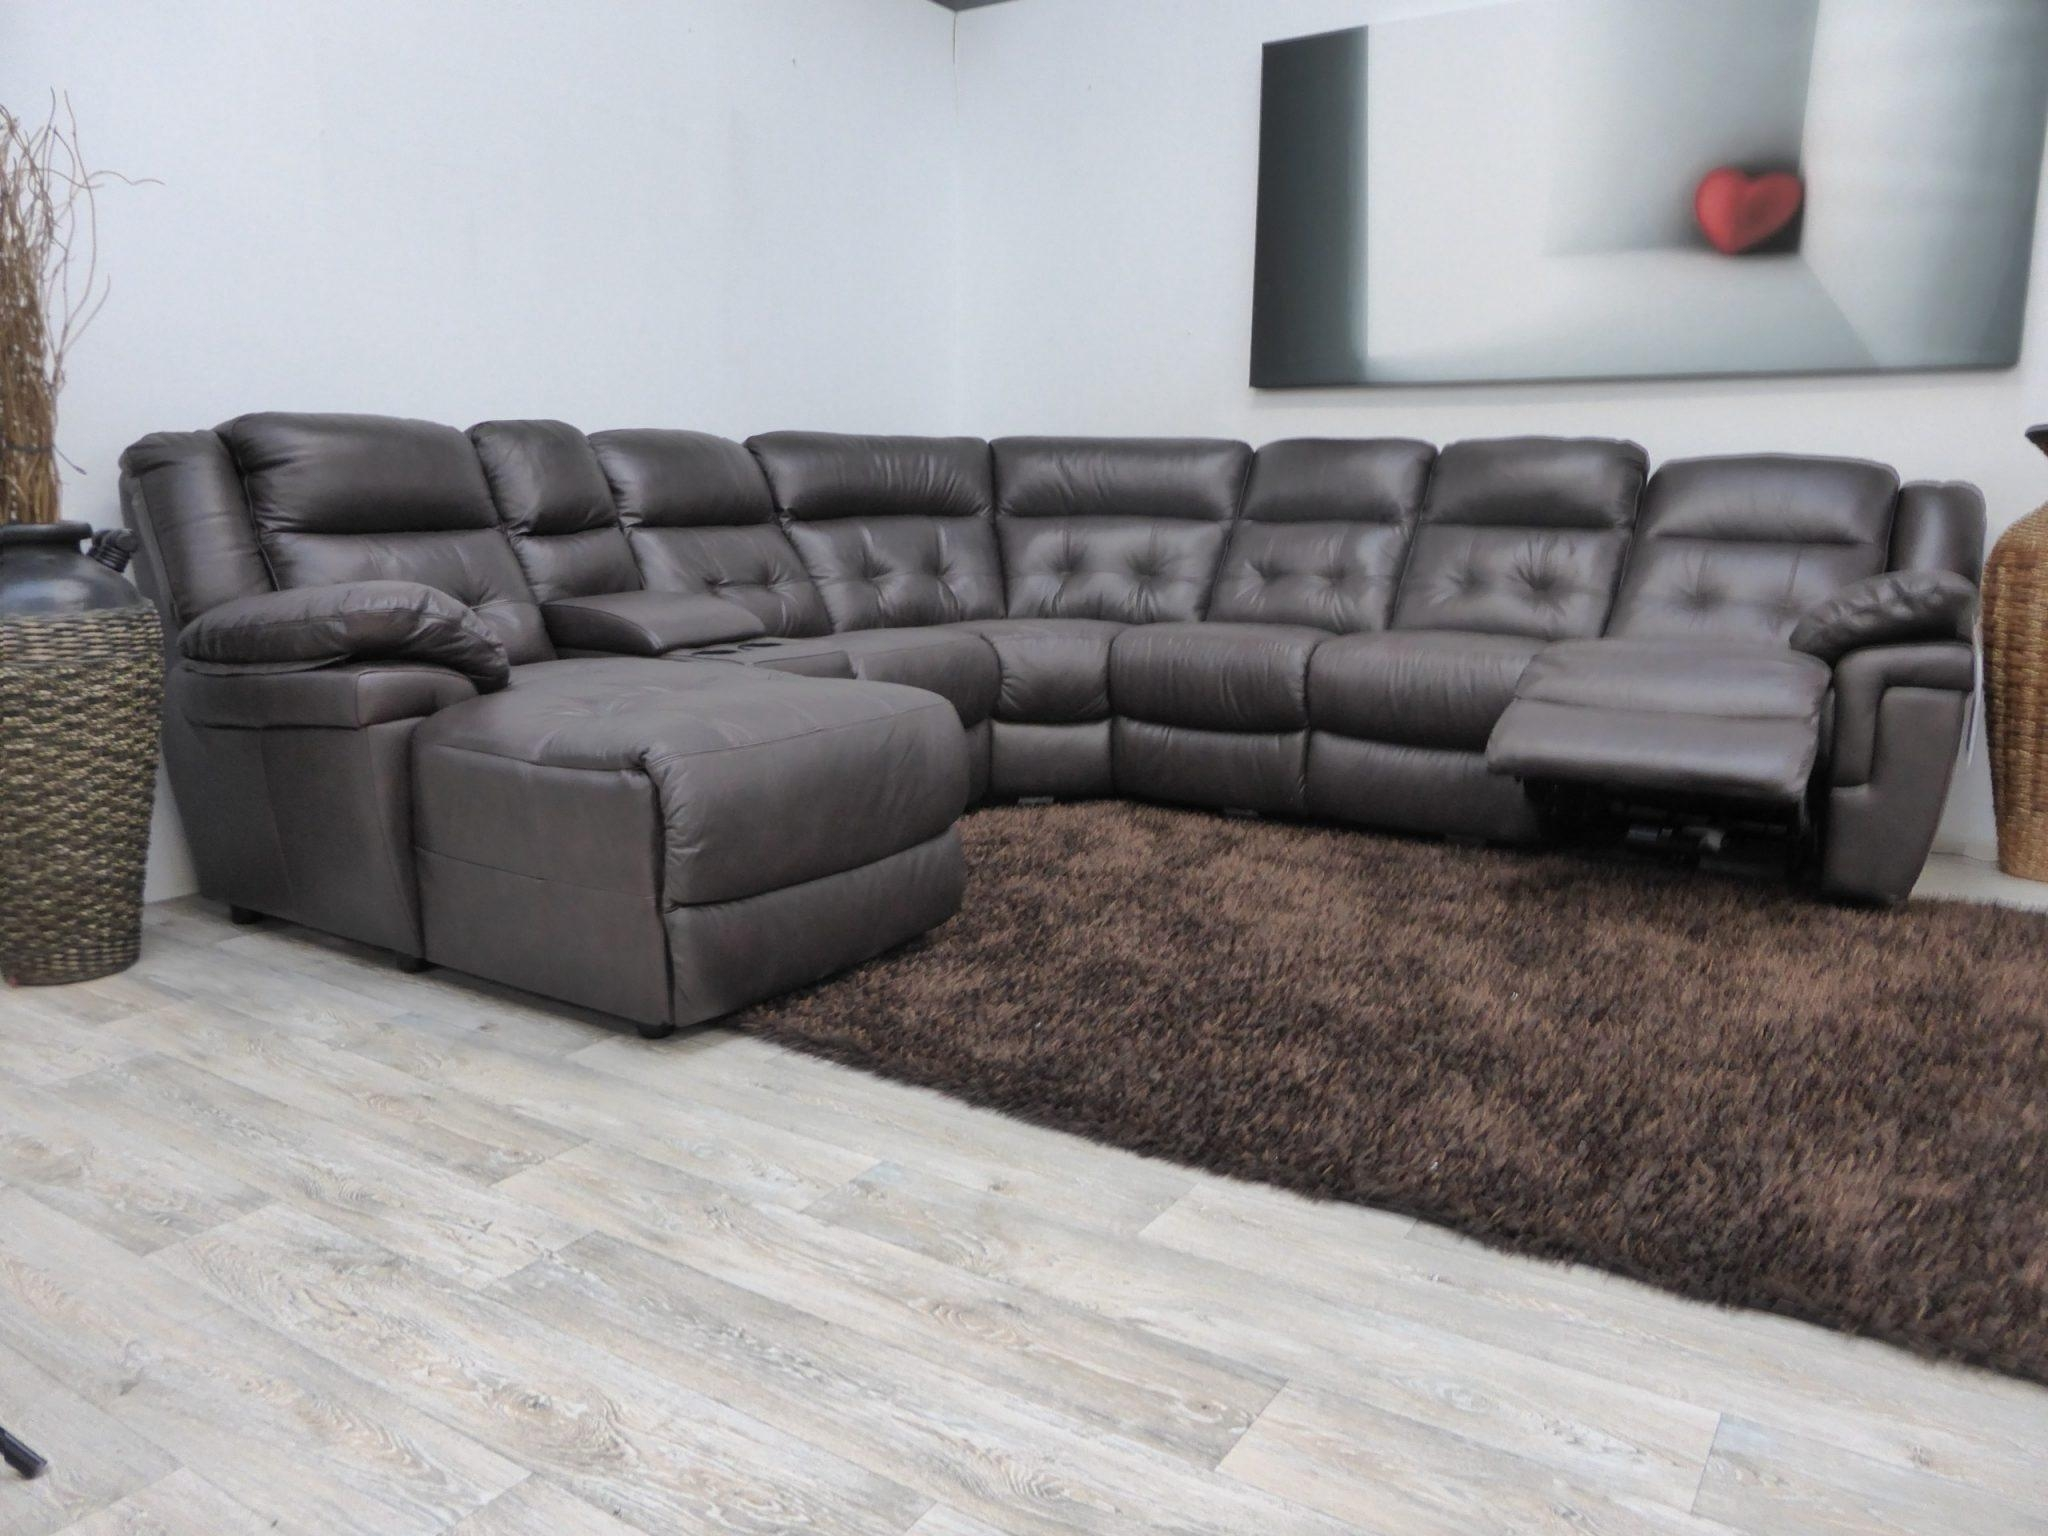 Furniture: Impressive Lazy Boy Sectional For Living Room Furniture With Regard To Lazy Boy Leather Sectional (Image 7 of 20)